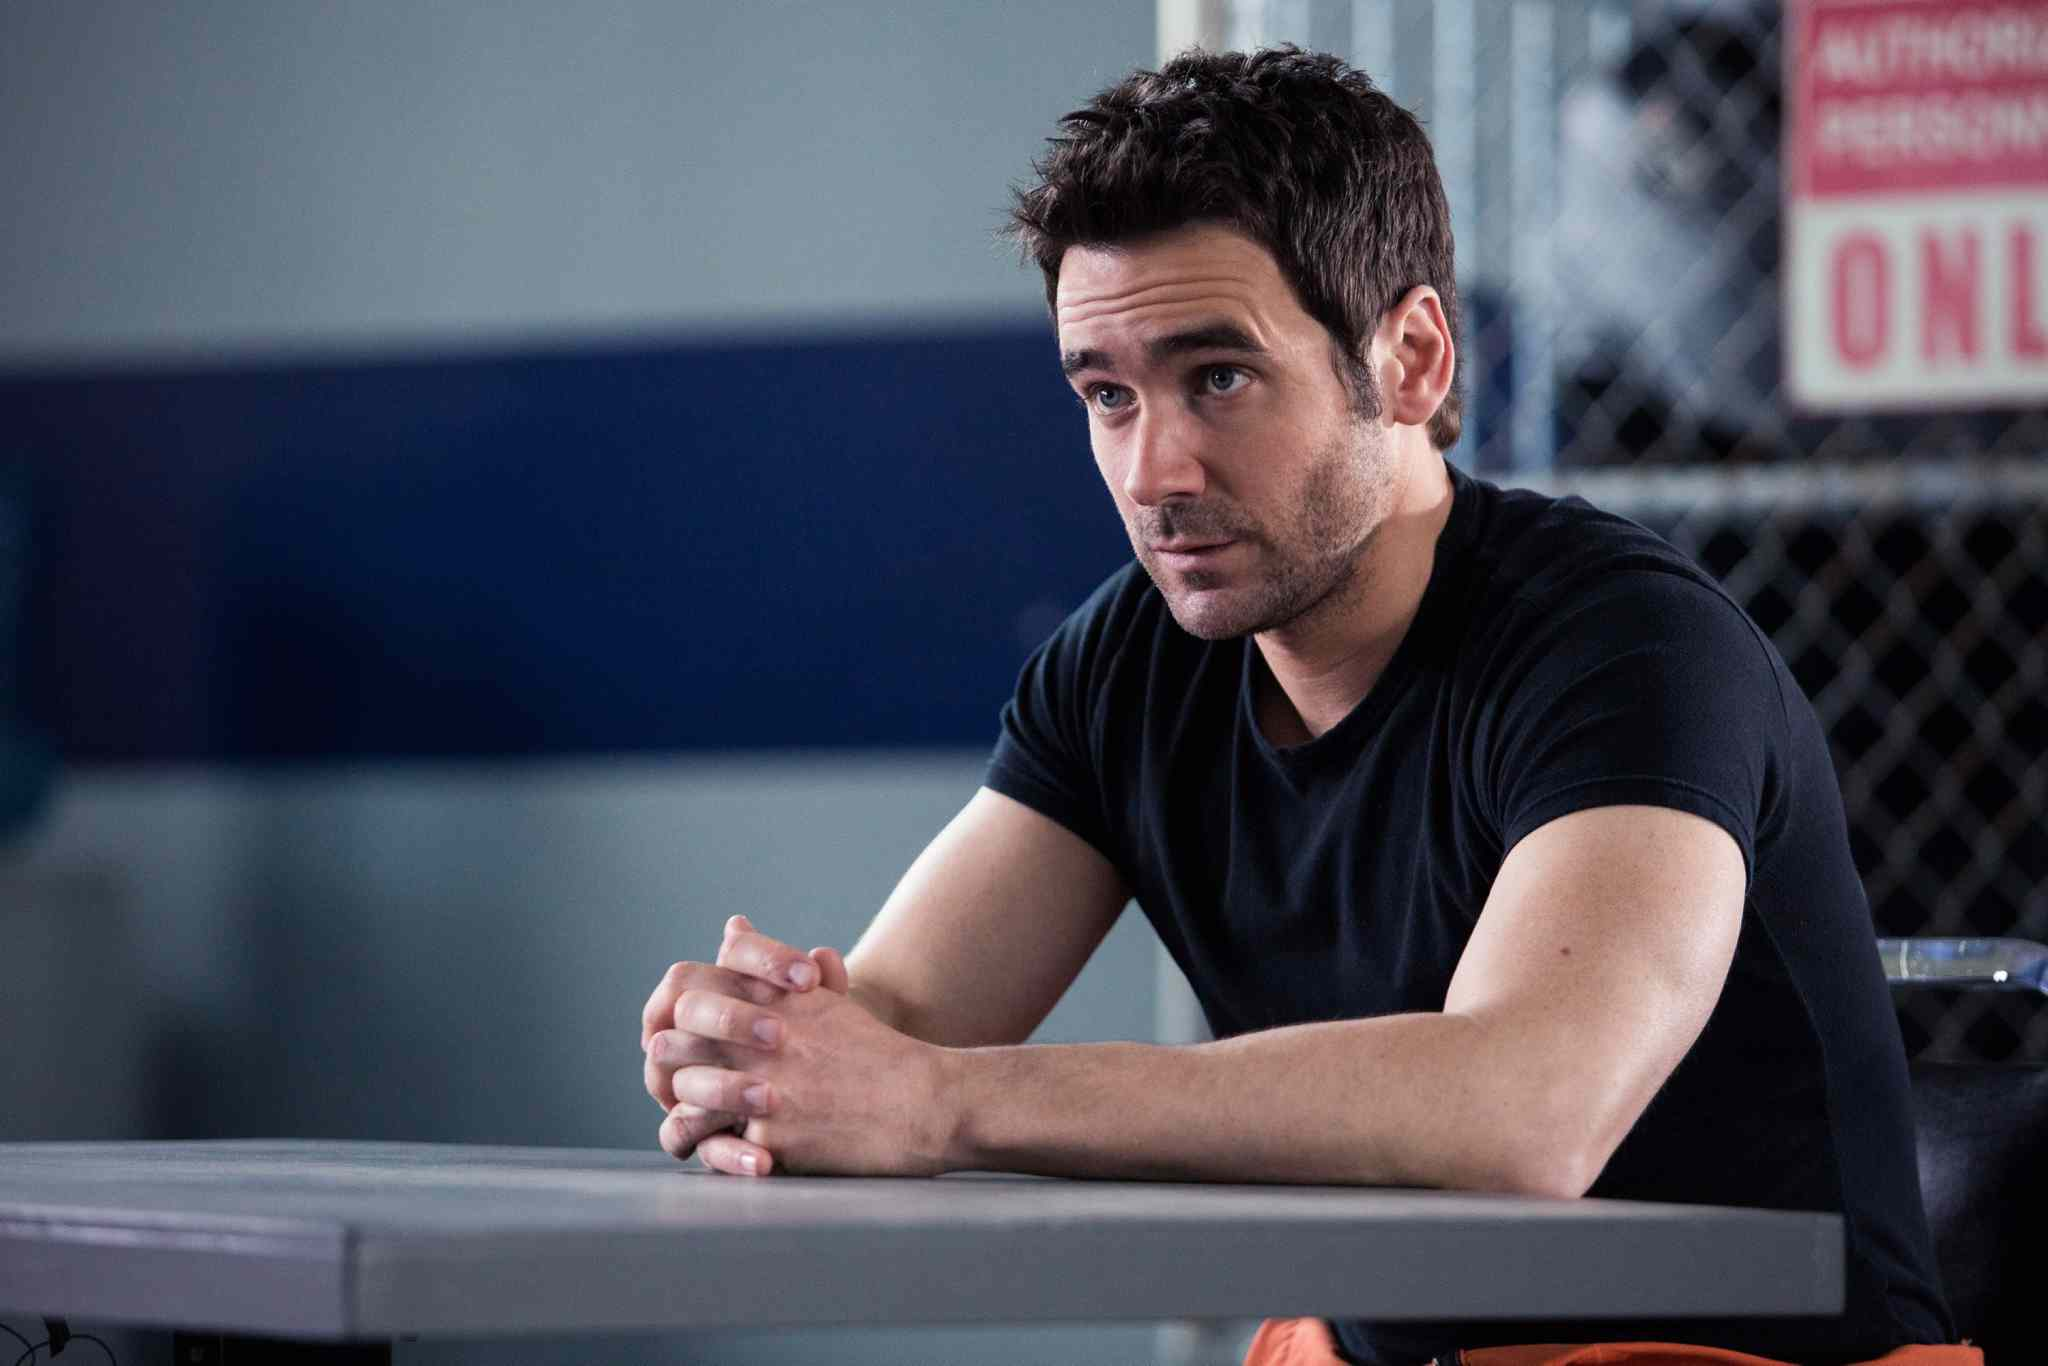 Allan Hawco stars as Jake Doyle; he also serves as writer and producer on Republic of Doyle.